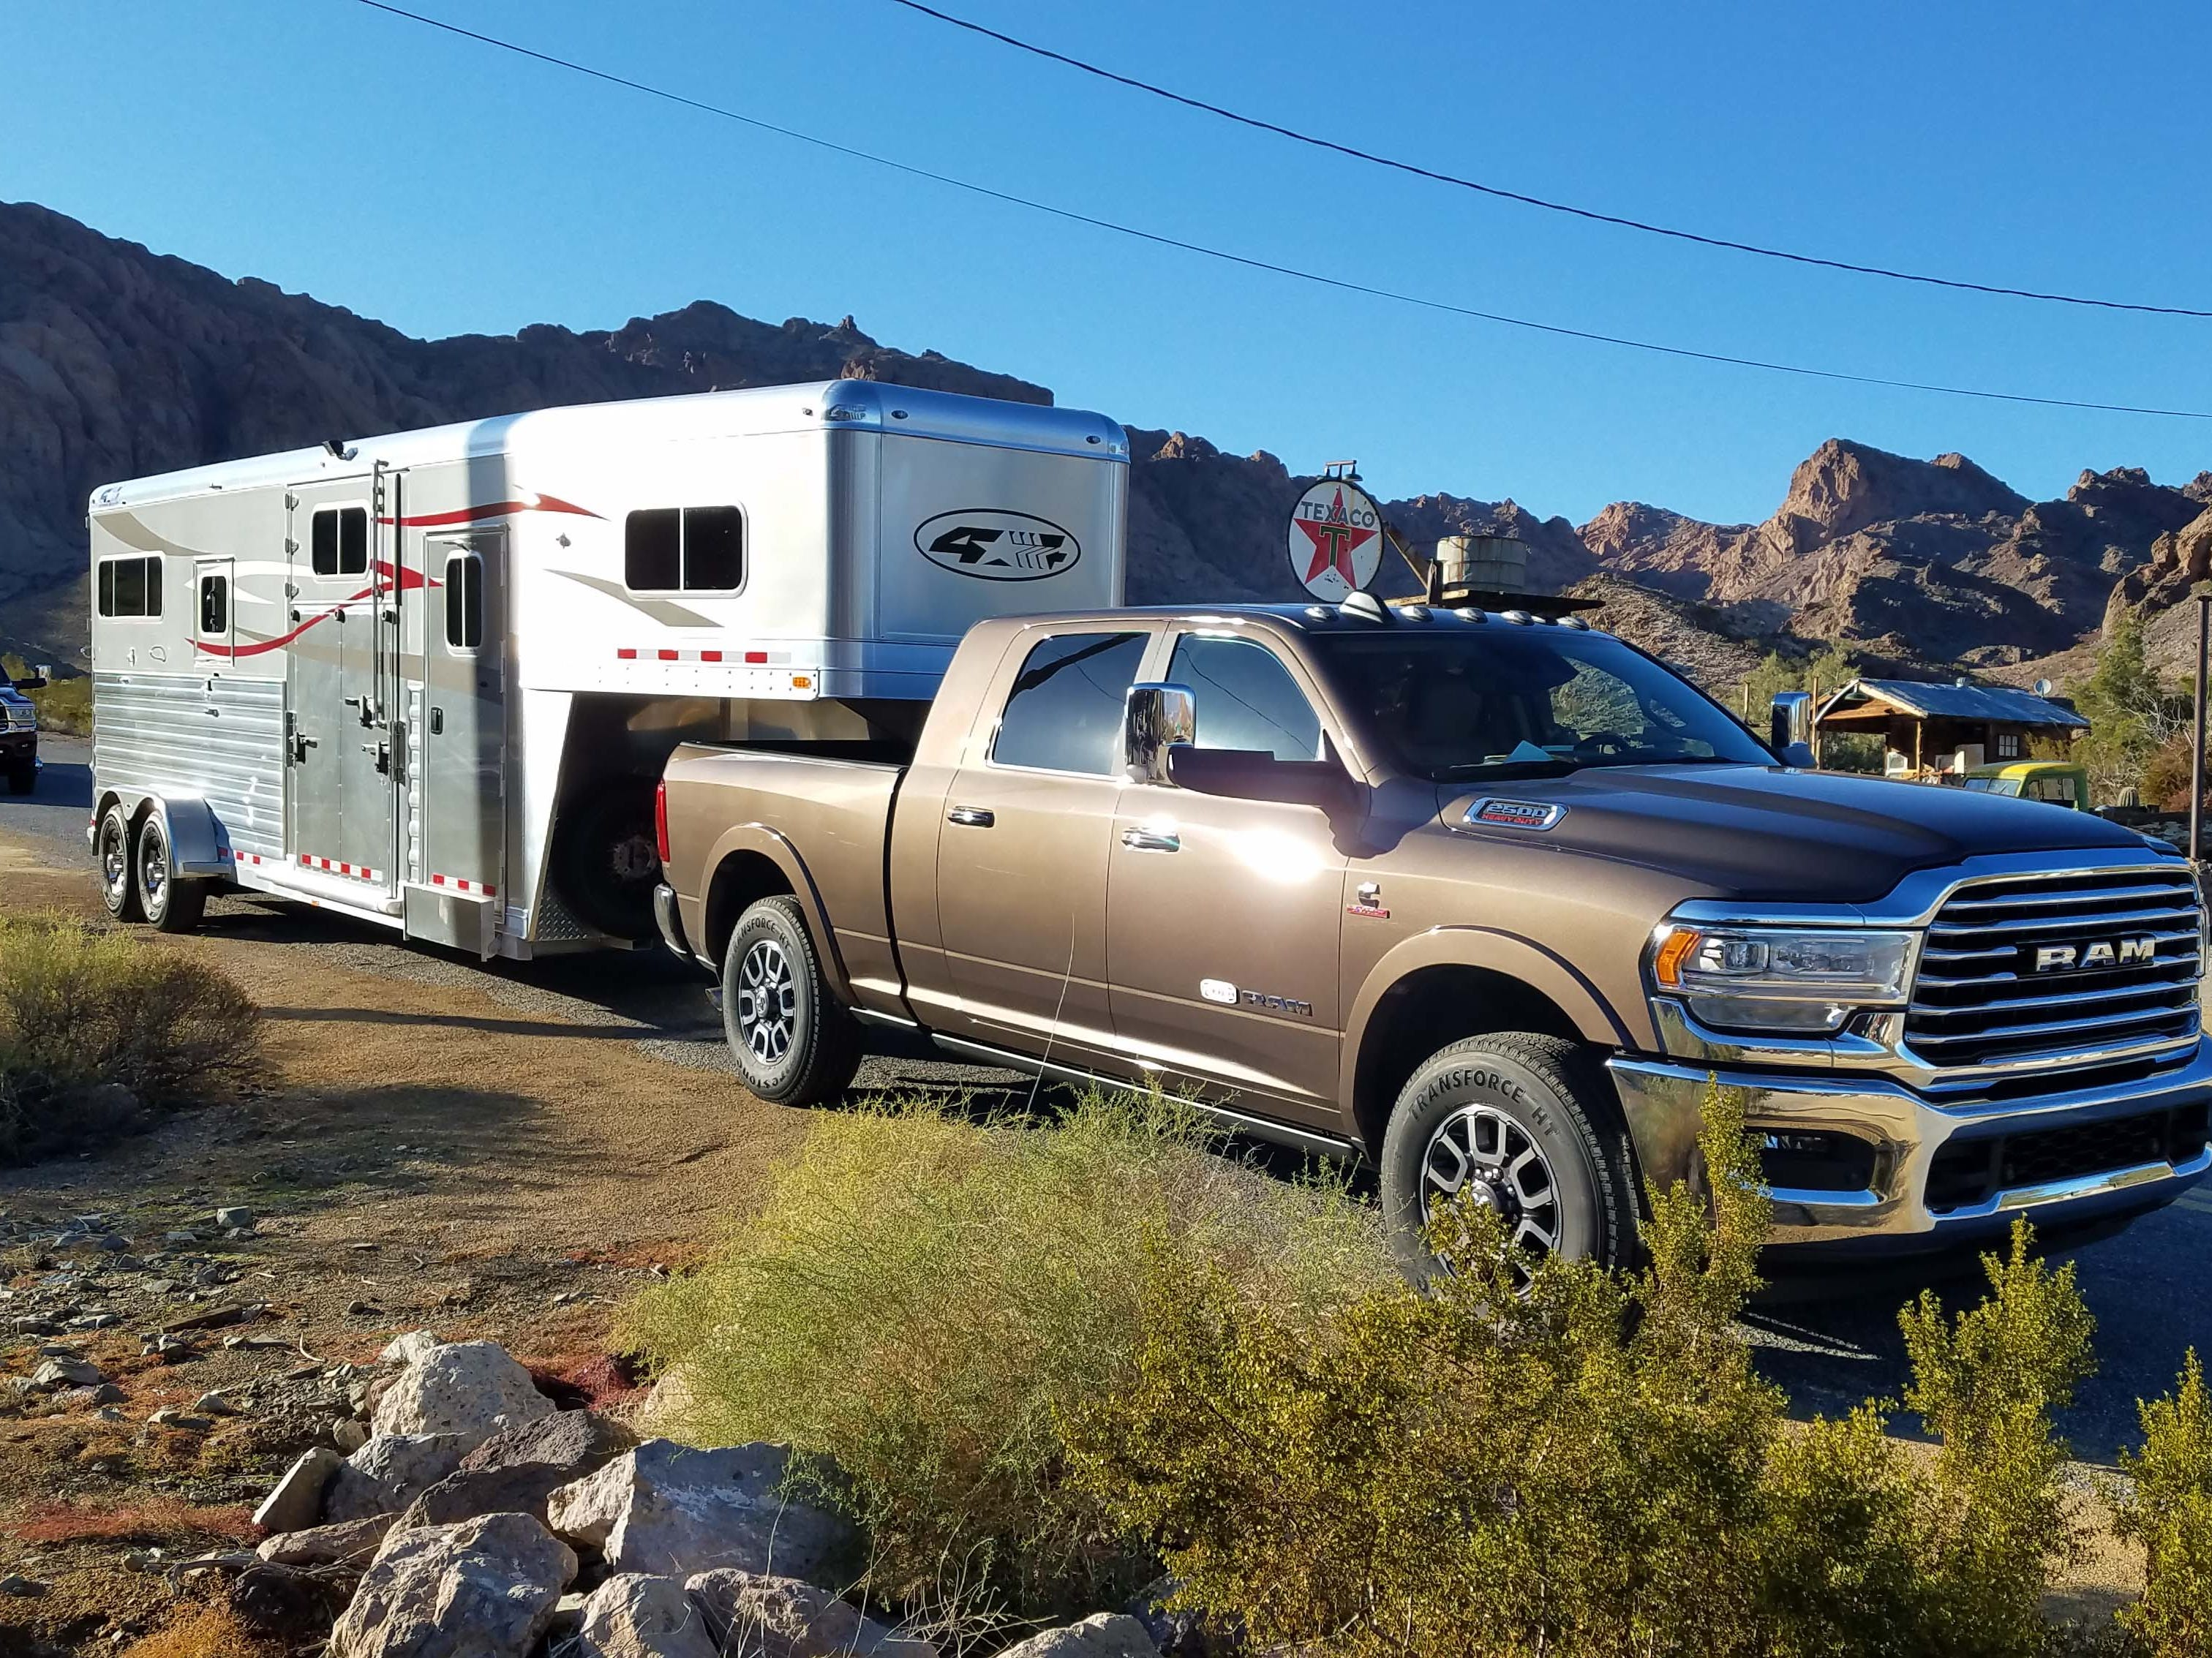 The Ram Heavy Duty comes in 2500 and 3500 sizes with V-8 and diesel options. This 2500 mega-cab diesel boasts 850 pound-feet of torque and easily pulls a 14,000-pound horse trailer.